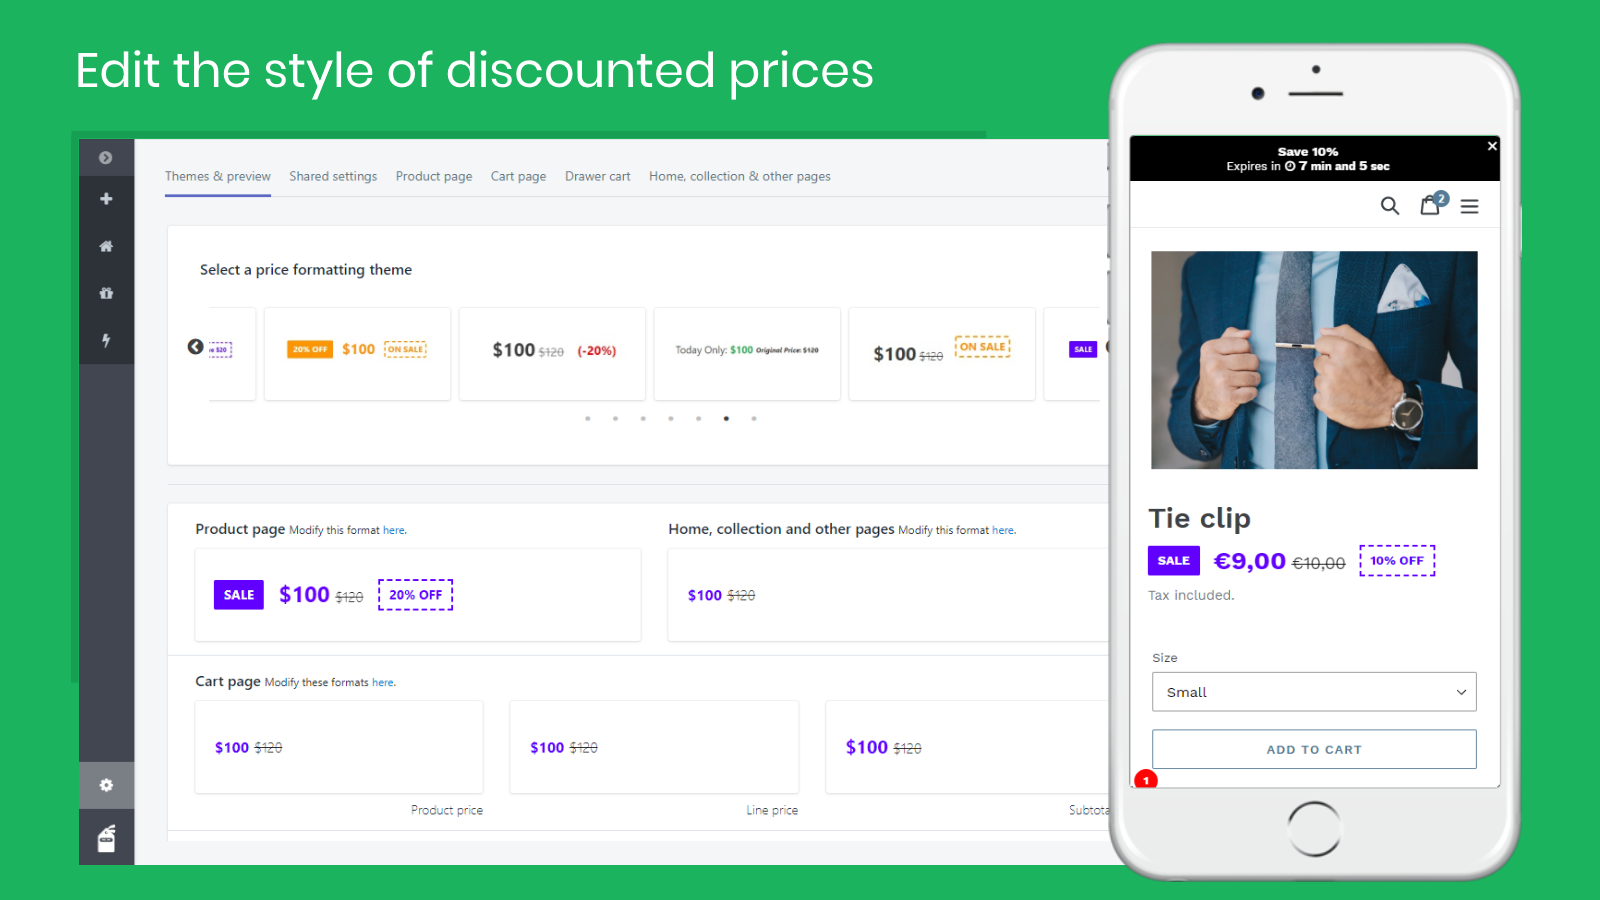 Dynamic pricing. Show discounted prices where it matters most.